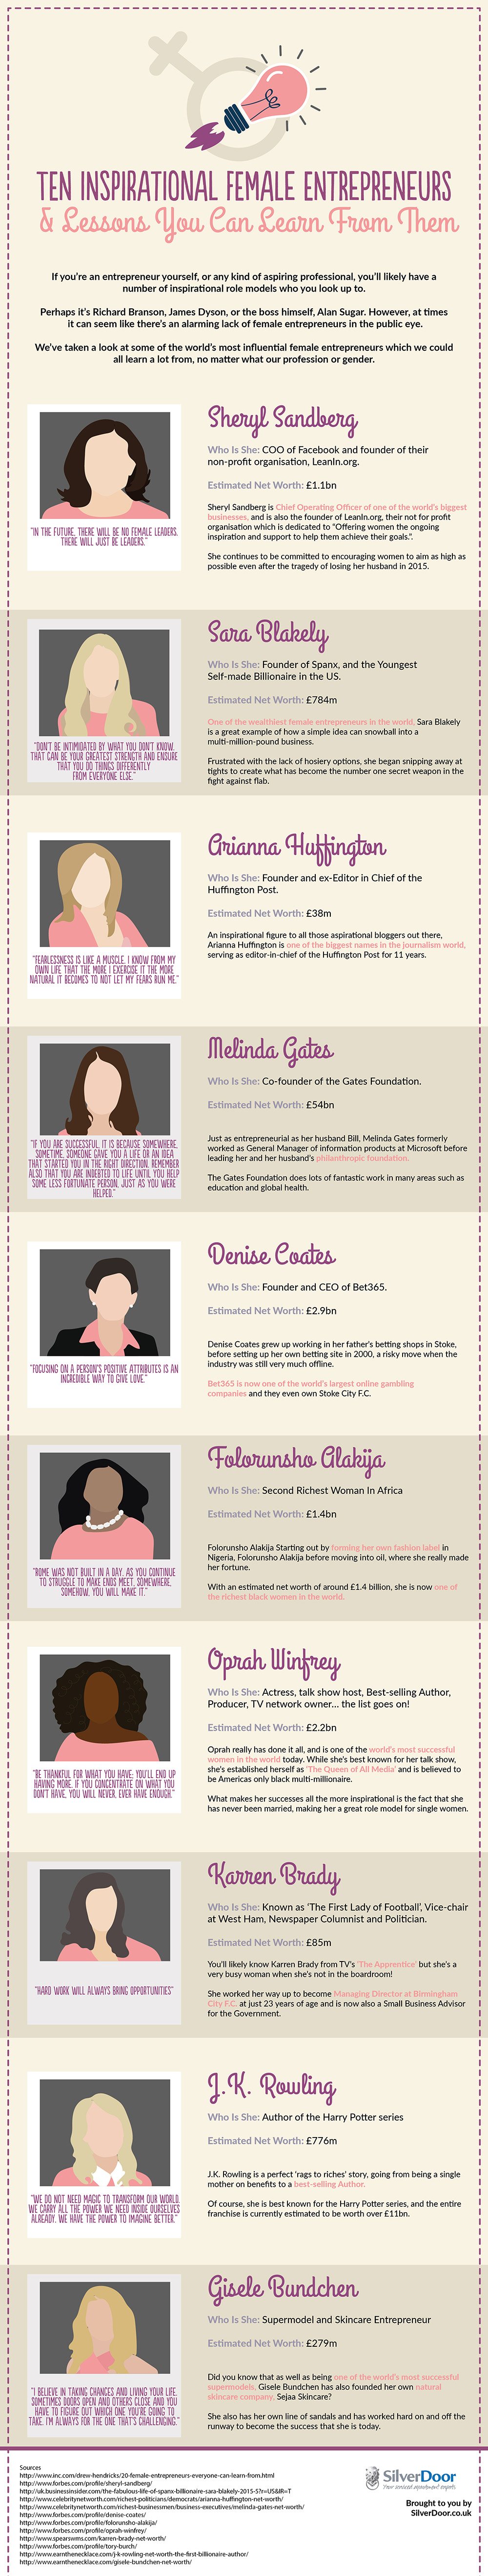 Actualizing Dreams: Inspirational Words of 10 Female Entrepreneurs - Infographic